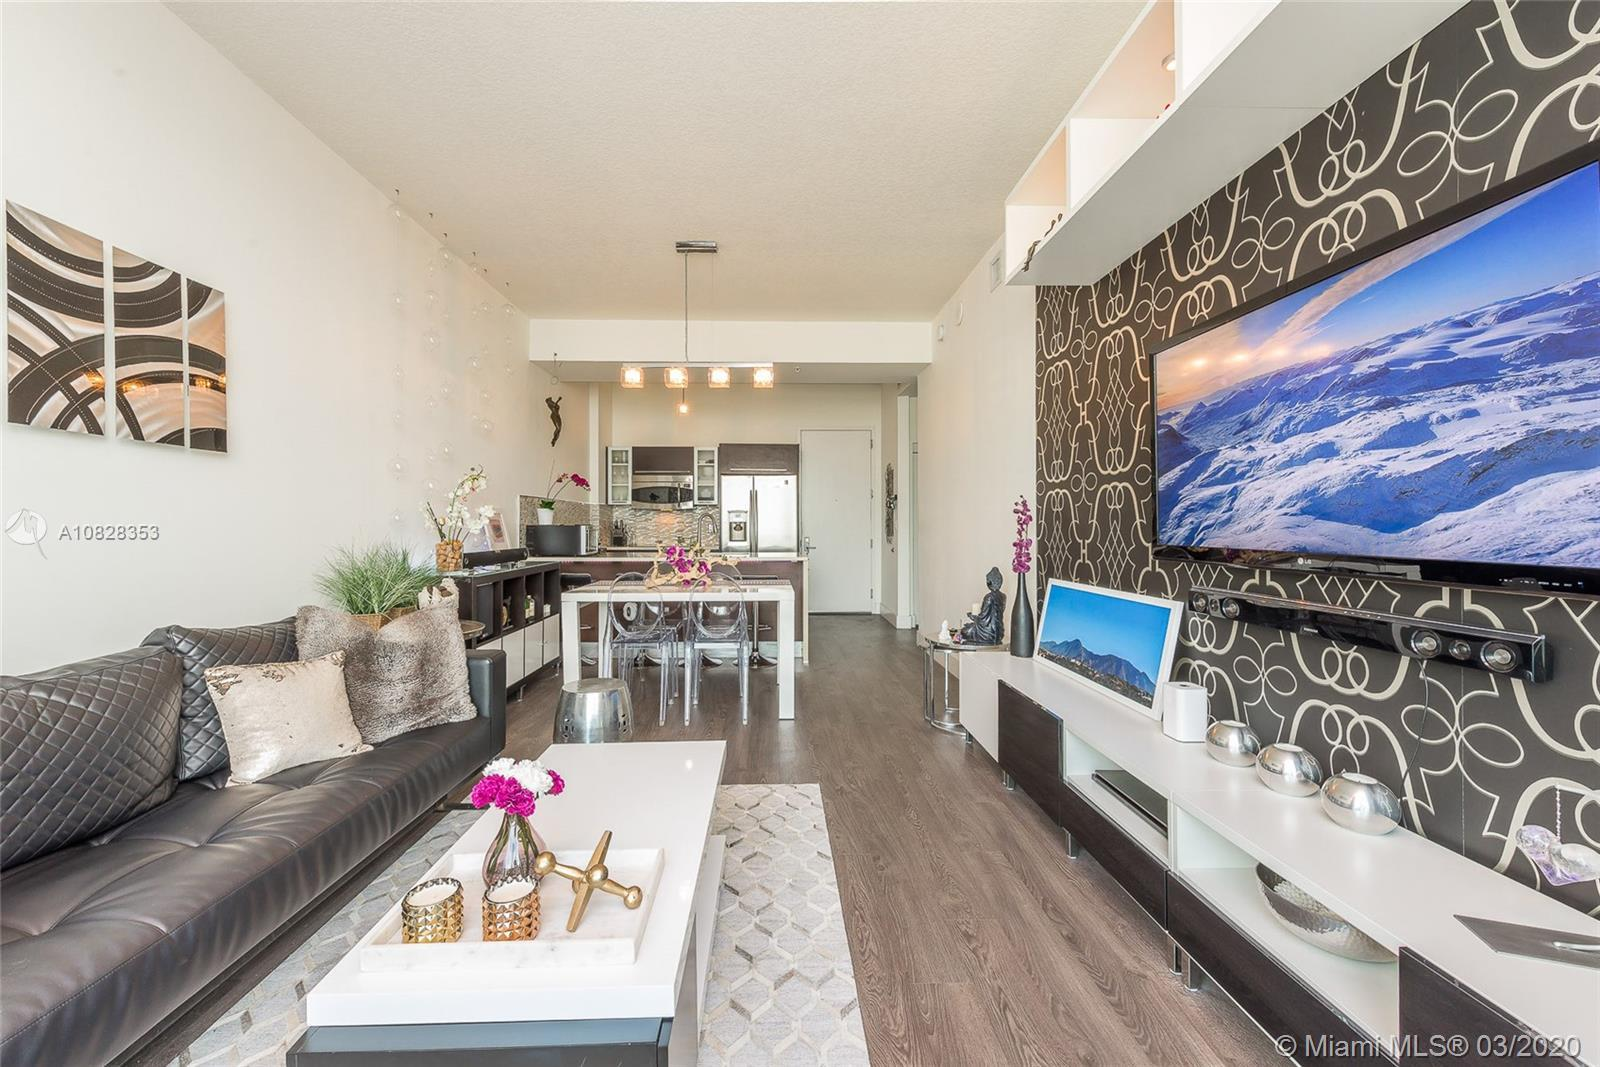 Amazing PH for sell at Gallery Art, the heart of Edgewater. Completely remodeled. Owner occupied. It